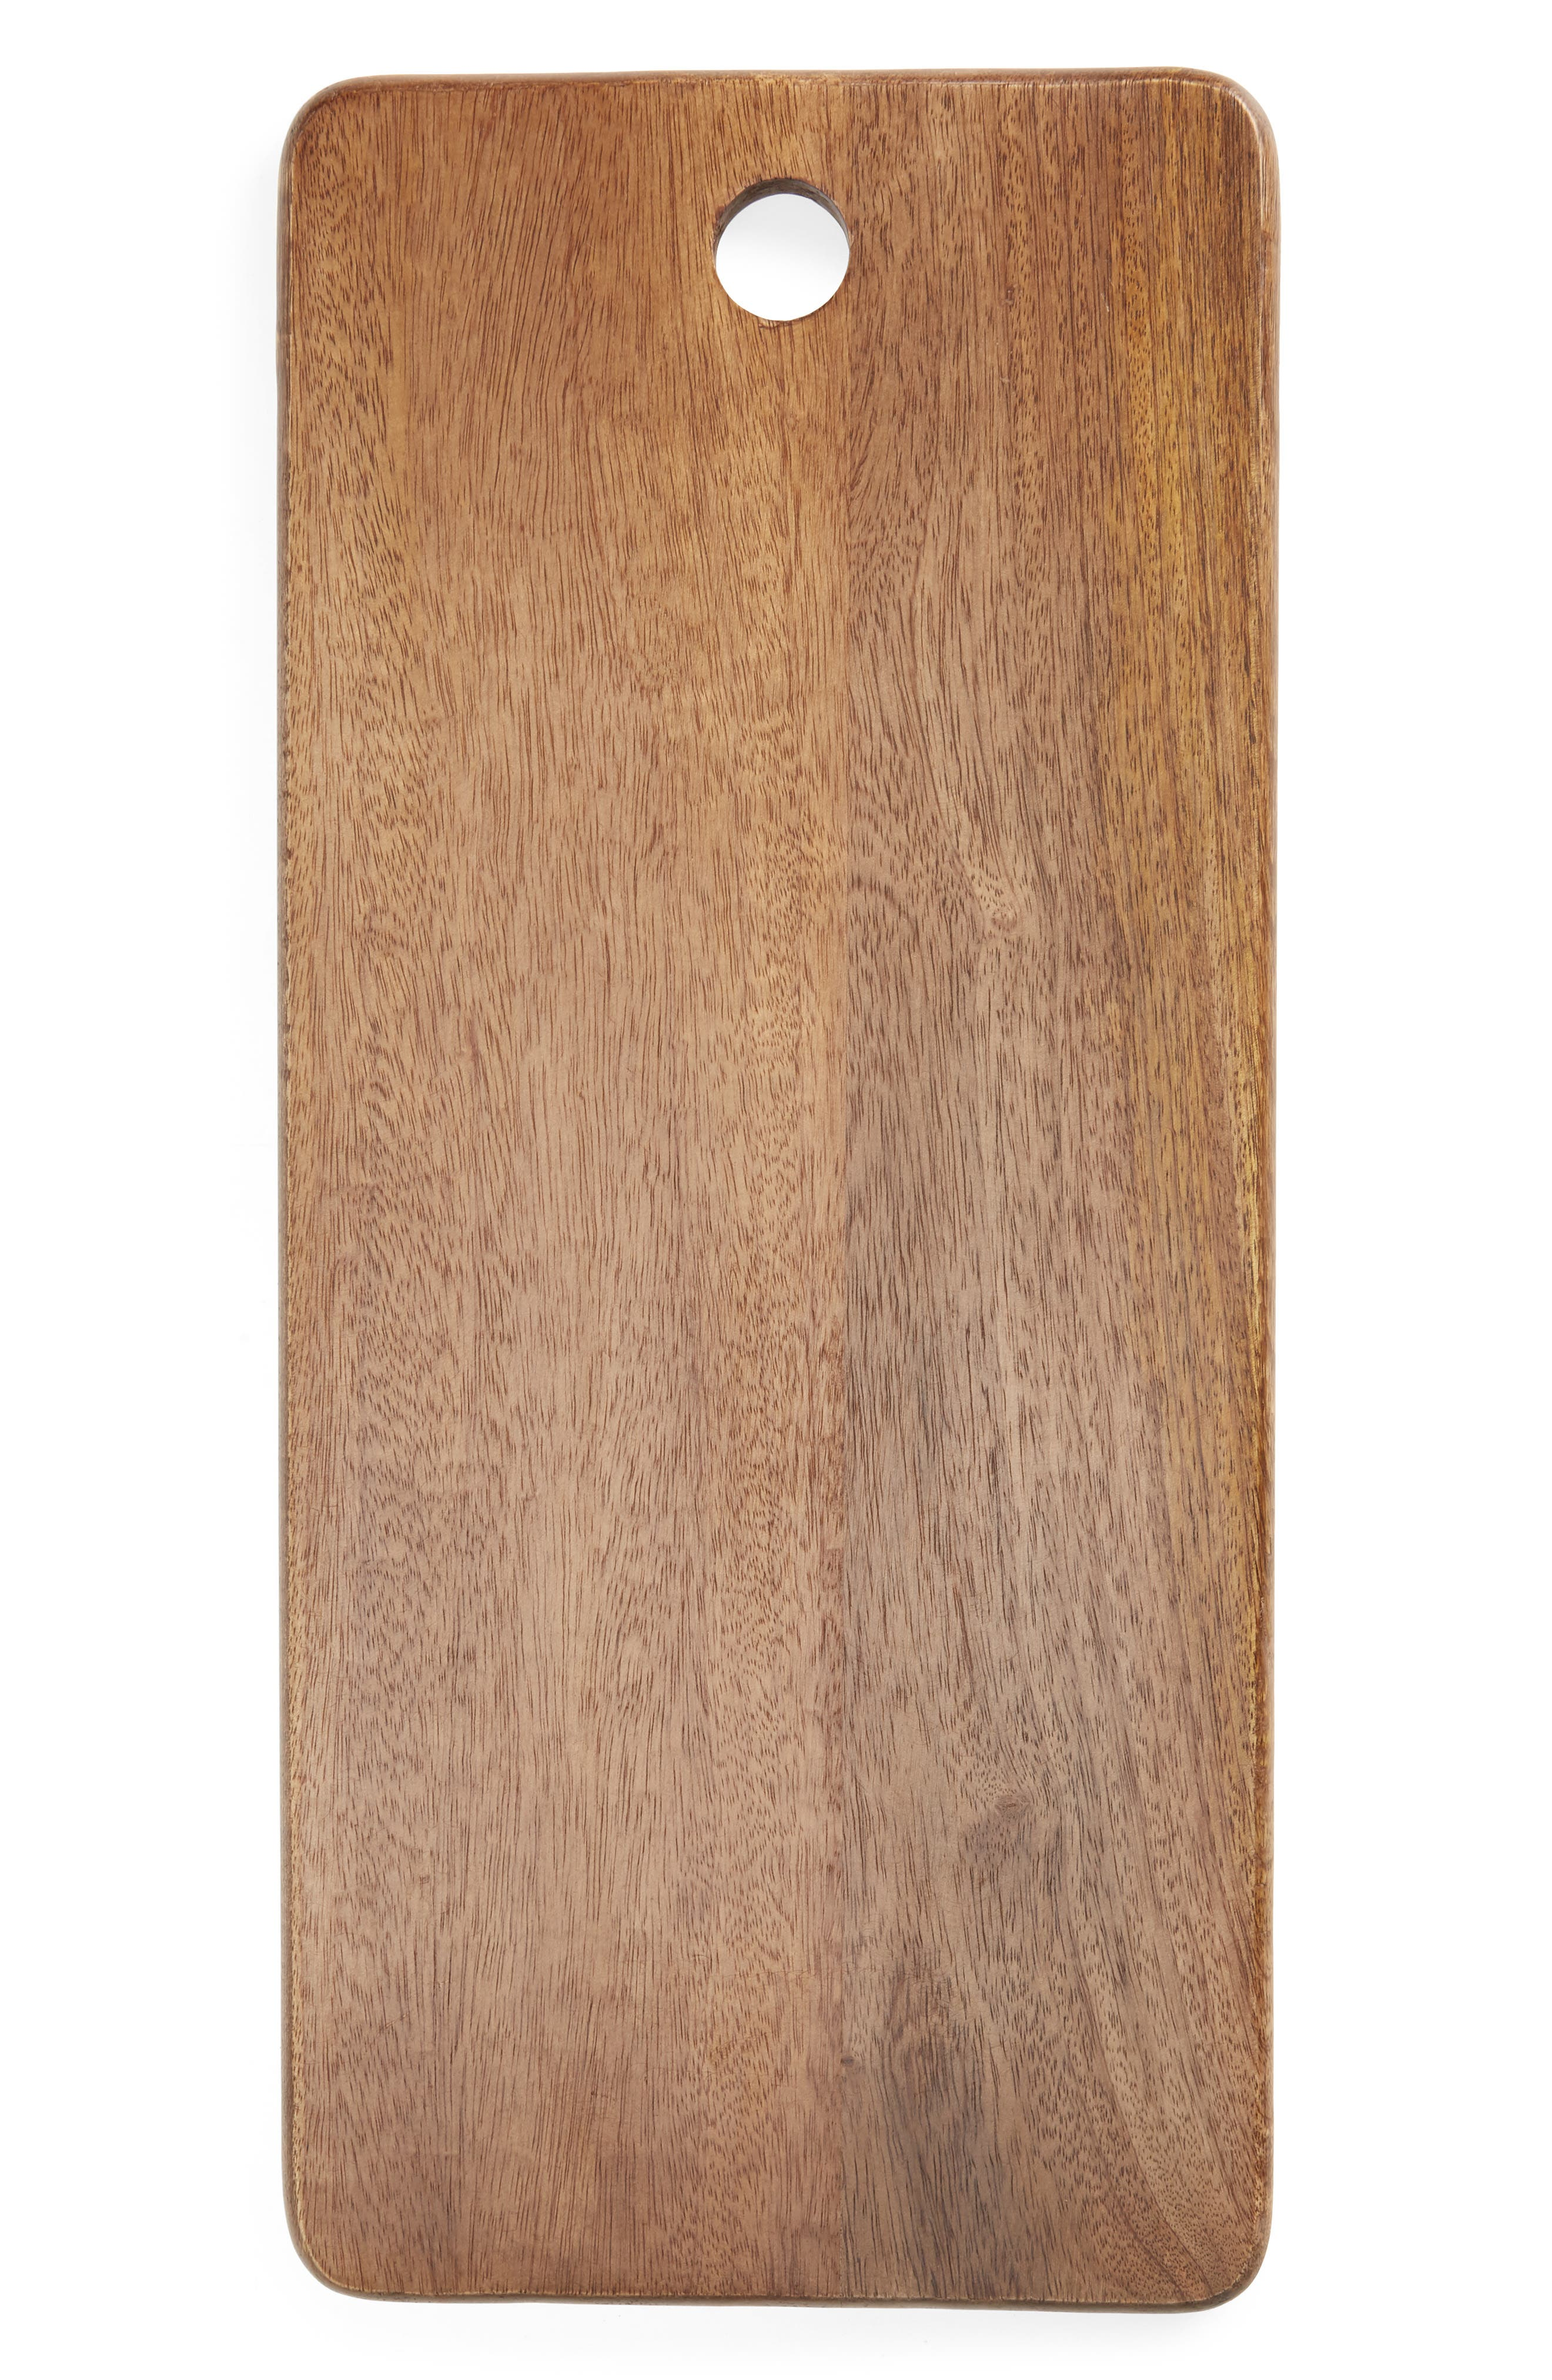 Made from mango wood, which is resistant to water damage, this serving board is a beautiful way to present cheeses, quick bites and small sweets. Style Name: Nordstrom Mango Wood Serving Board. Style Number: 6016877. Available in stores.